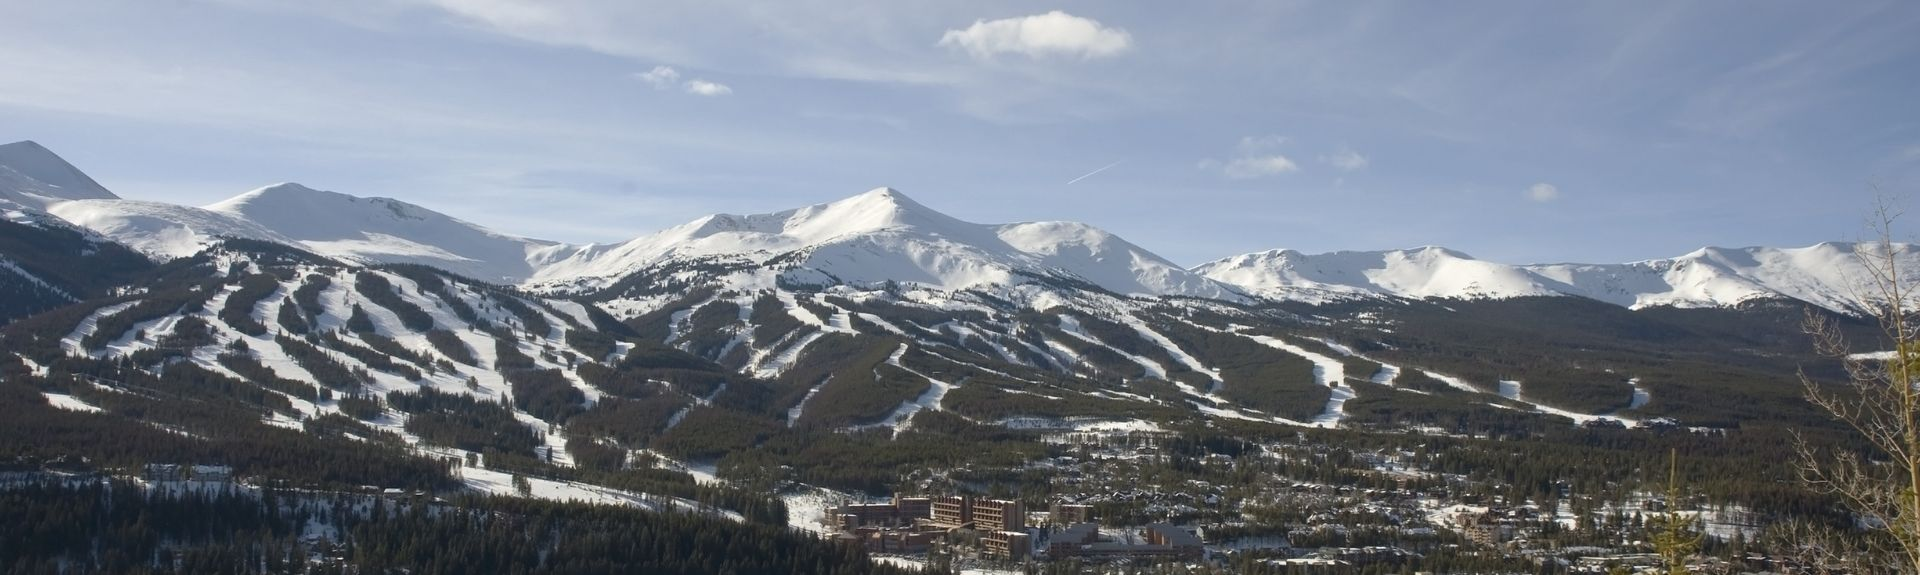 Peak 9, Breckenridge, Colorado, United States of America